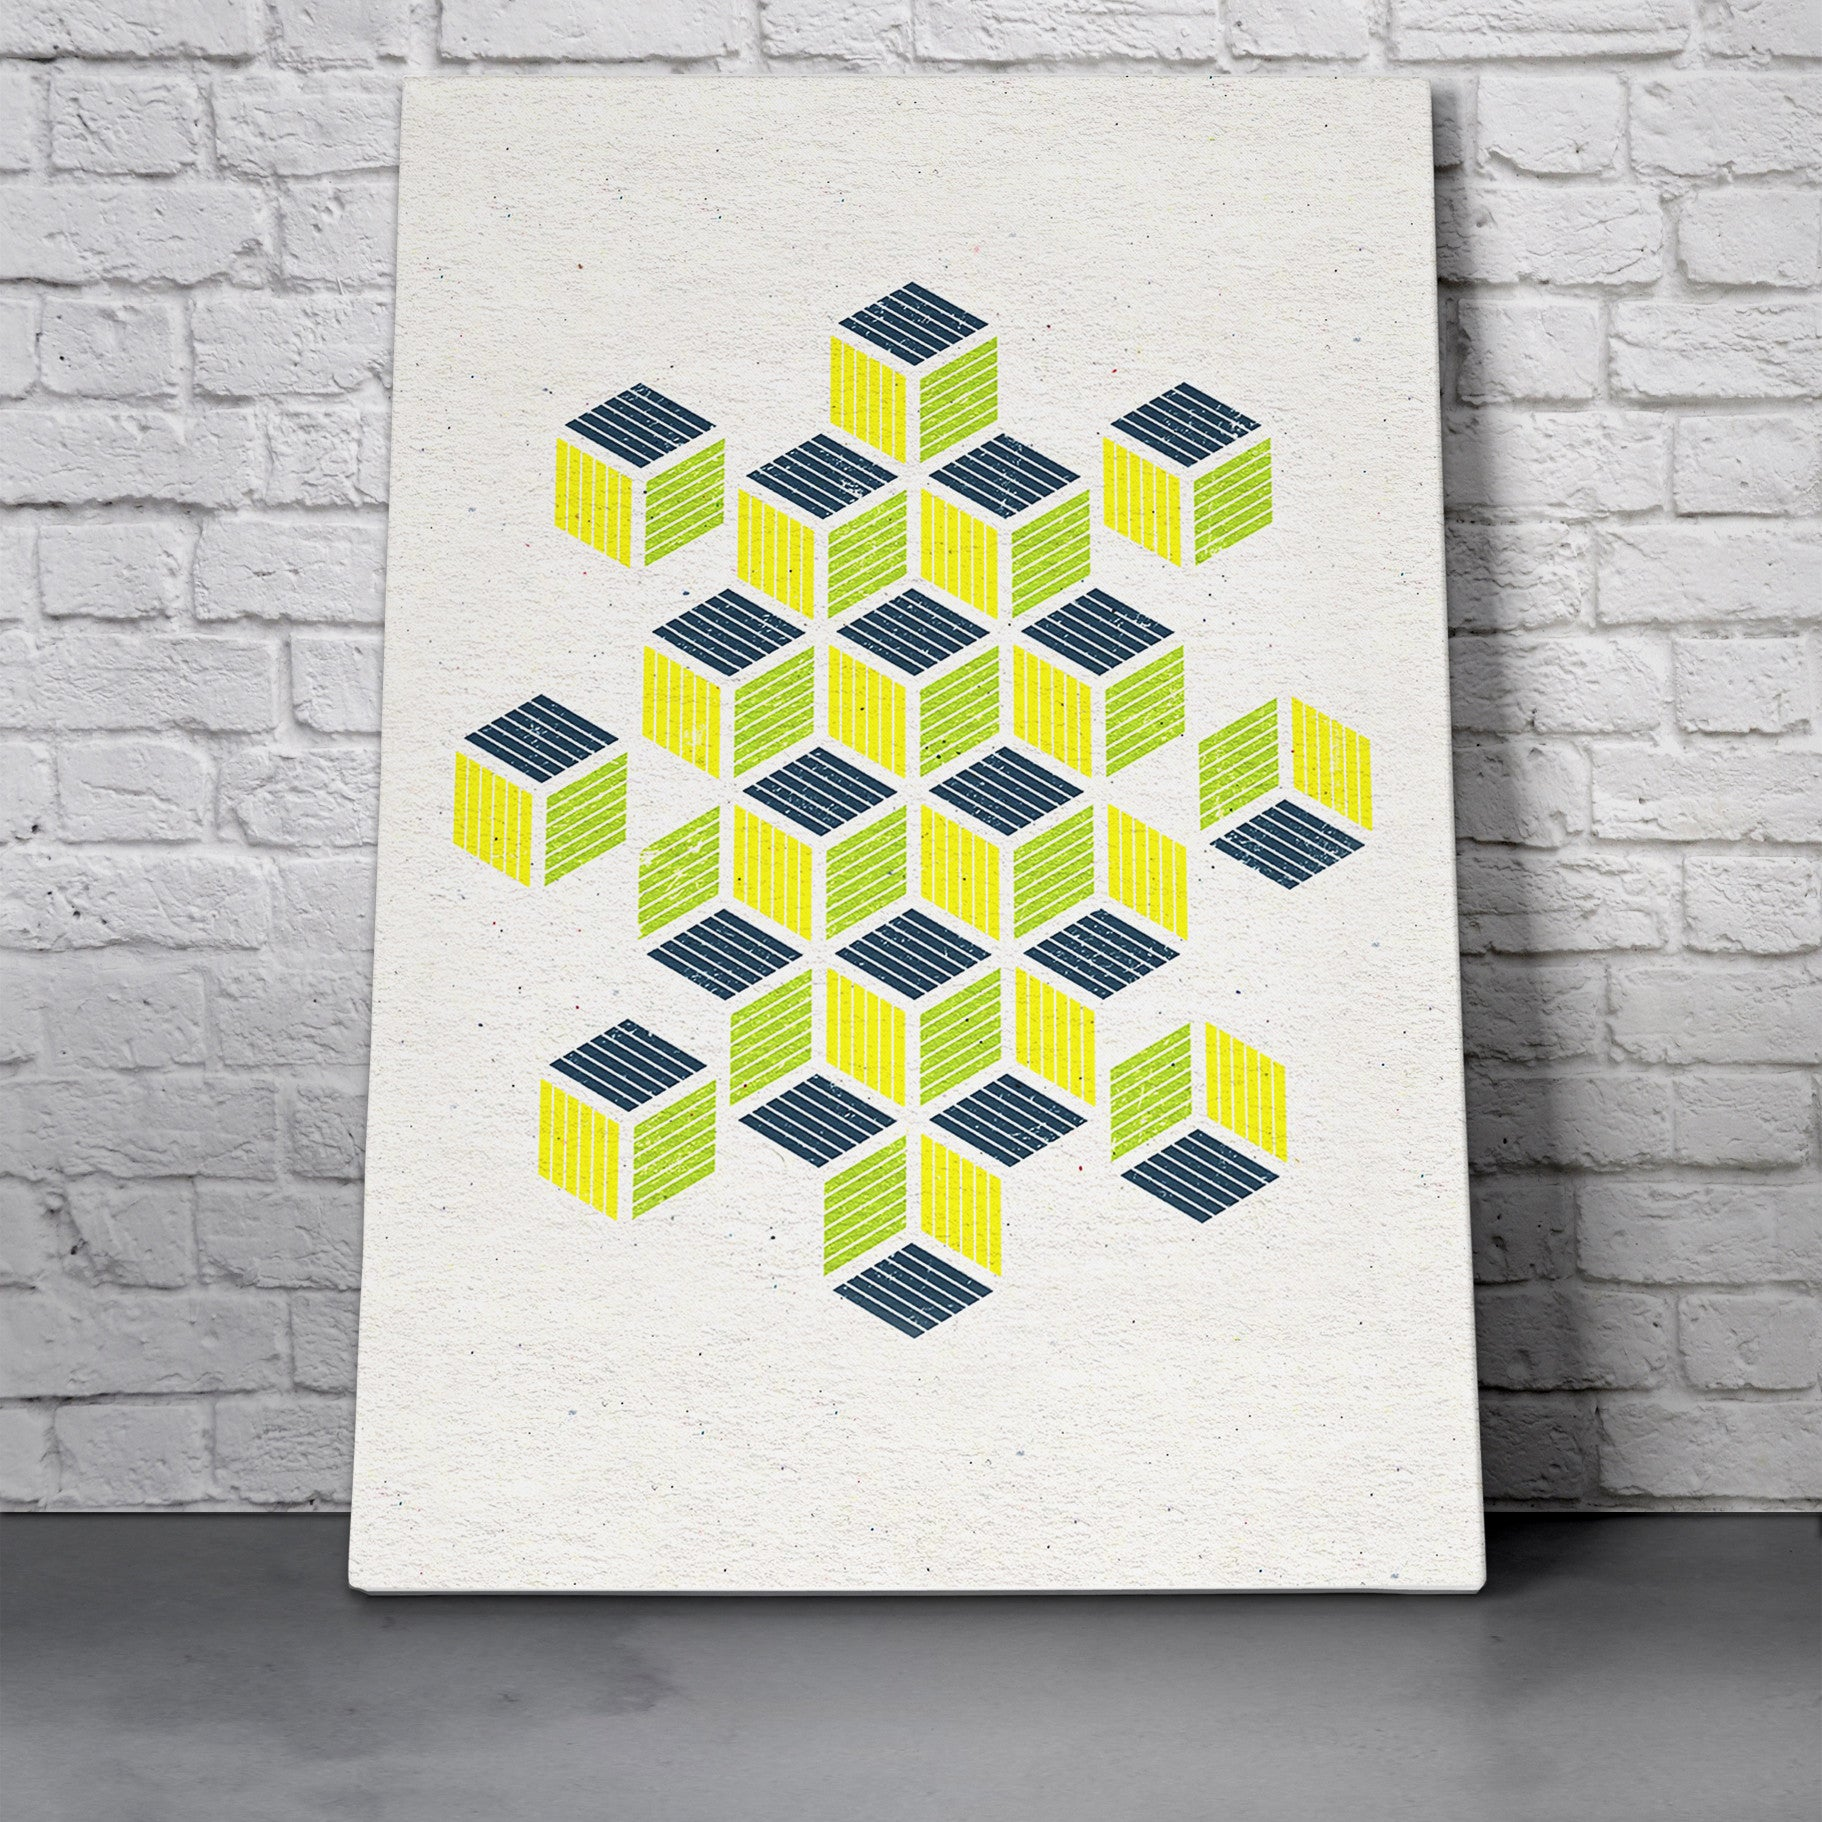 Canvas Wall Art Print - Yellow Navy Squares by RSKS Design - MNML Decor